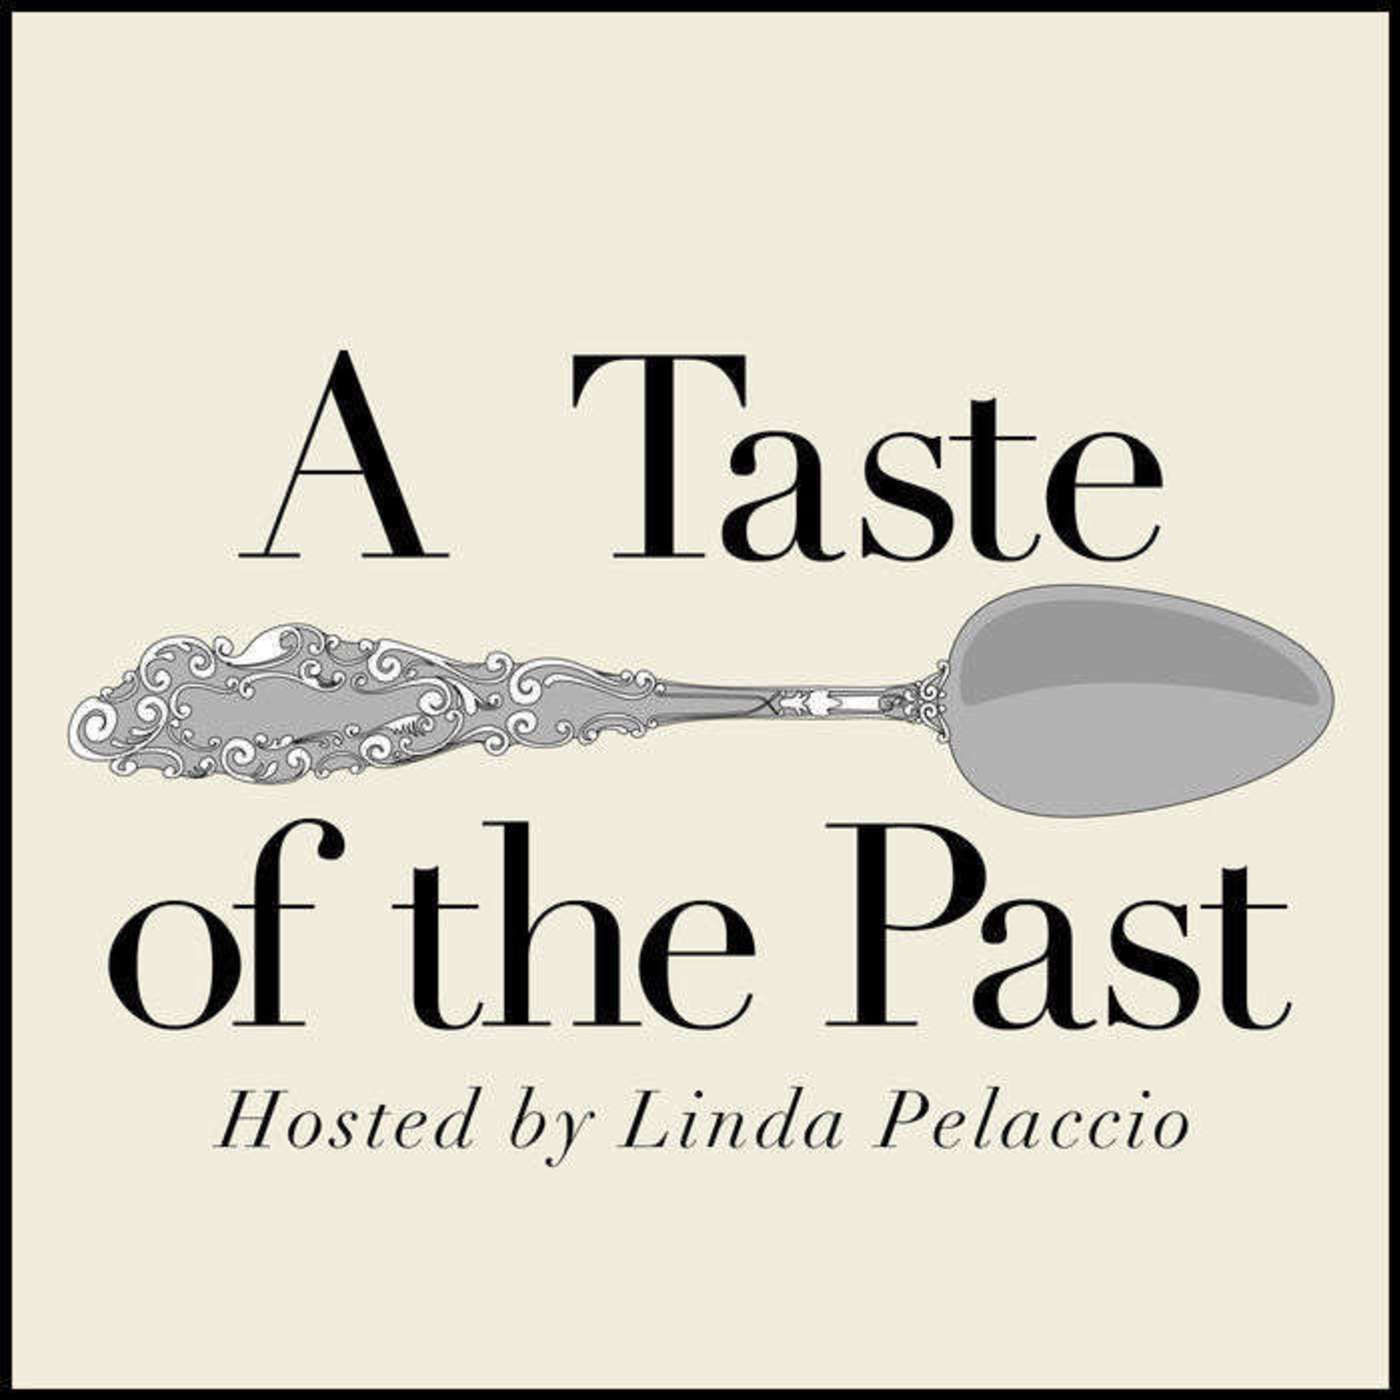 Episode 119: A History of Peanut Butter with Author Jon Krampner